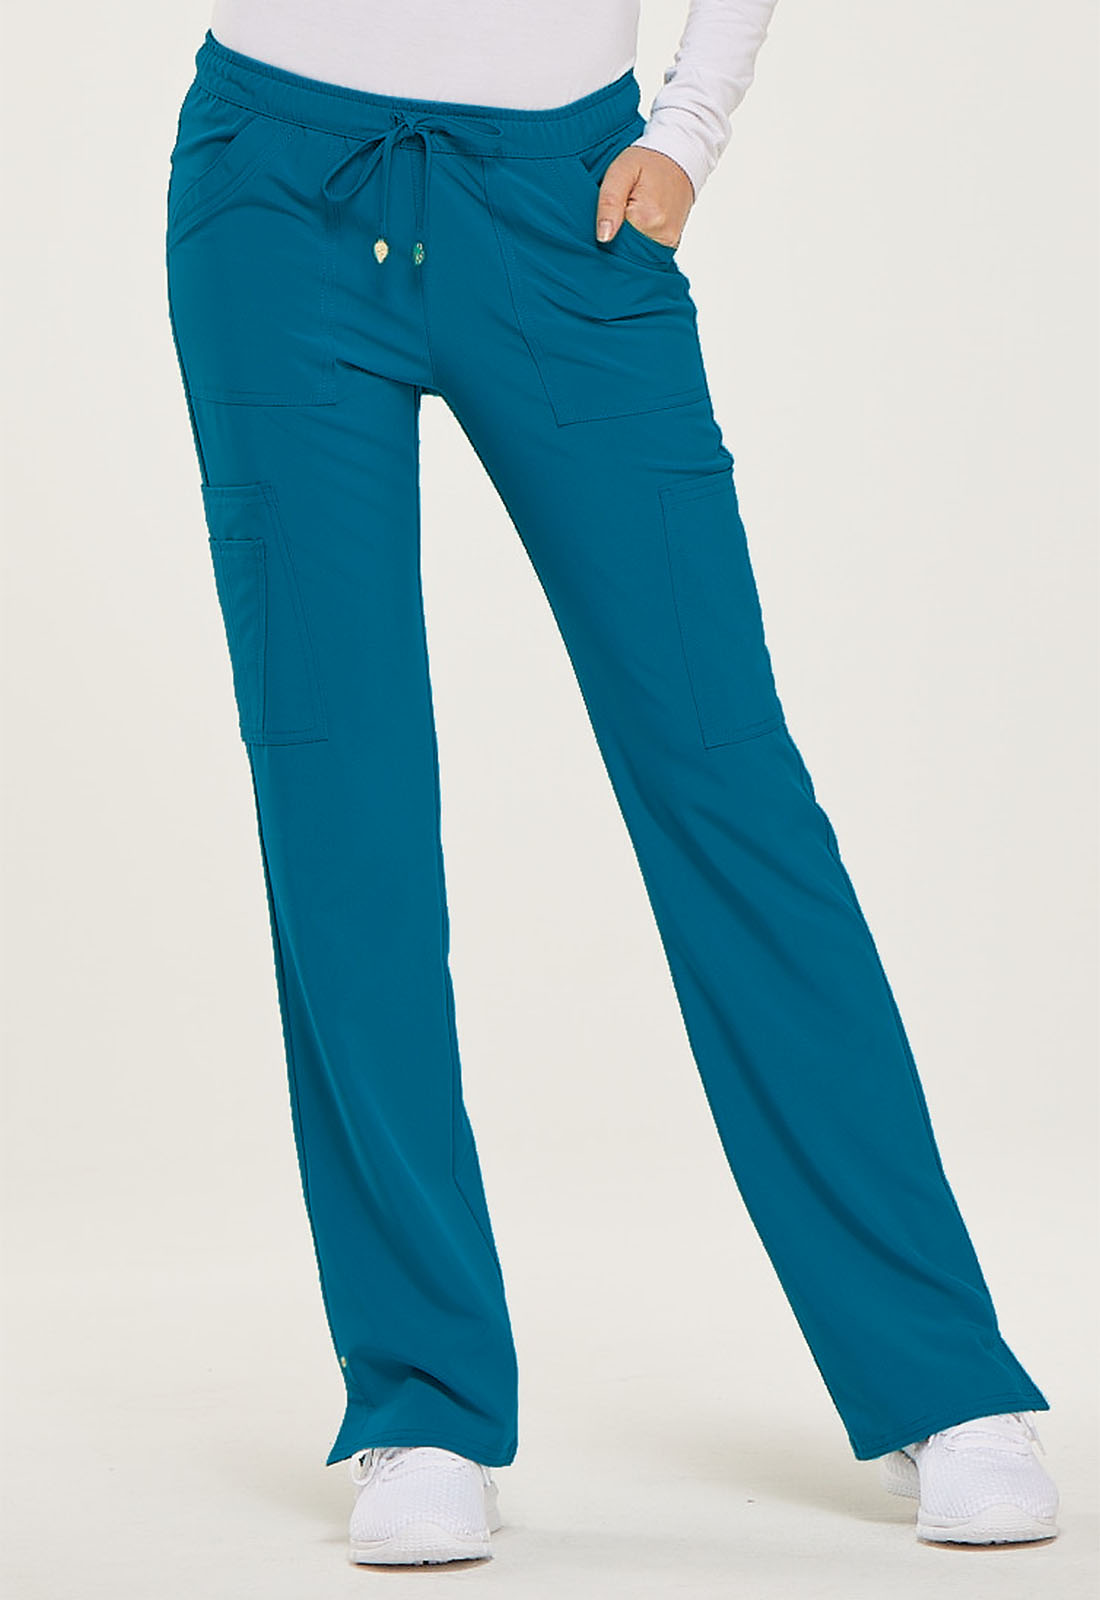 Teal Blue HeartSoul Scrubs Charmed Low Rise Drawstring Pants HS025 TLPS